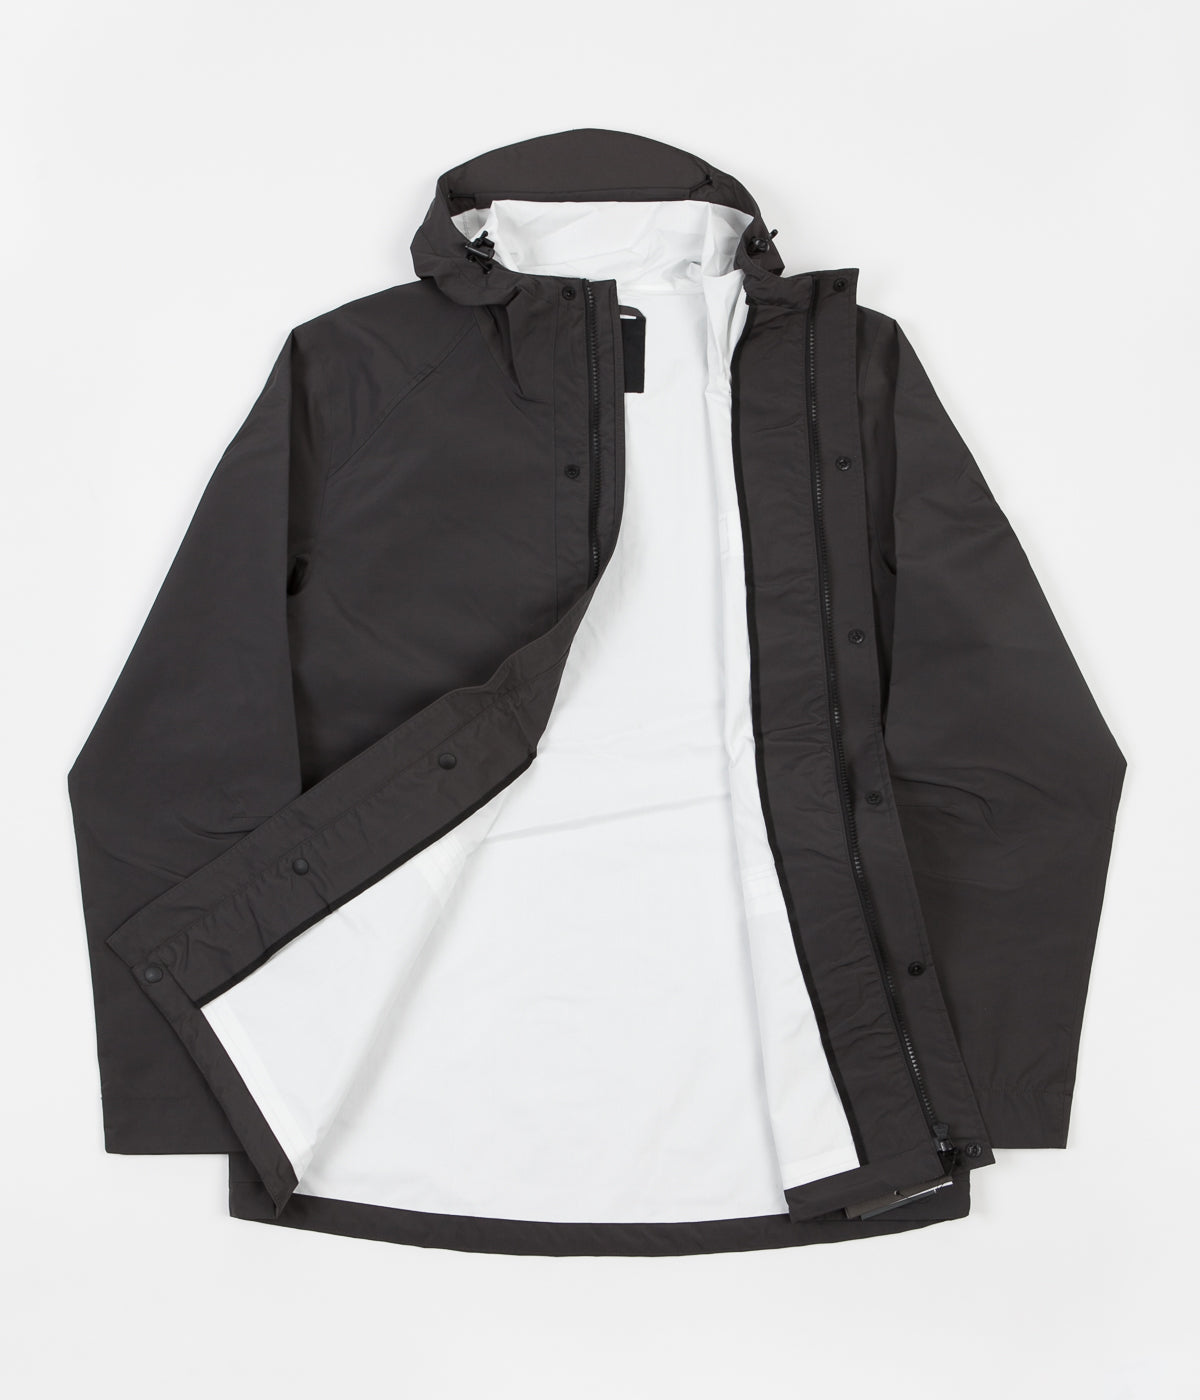 Finisterre Litus Jacket - Black